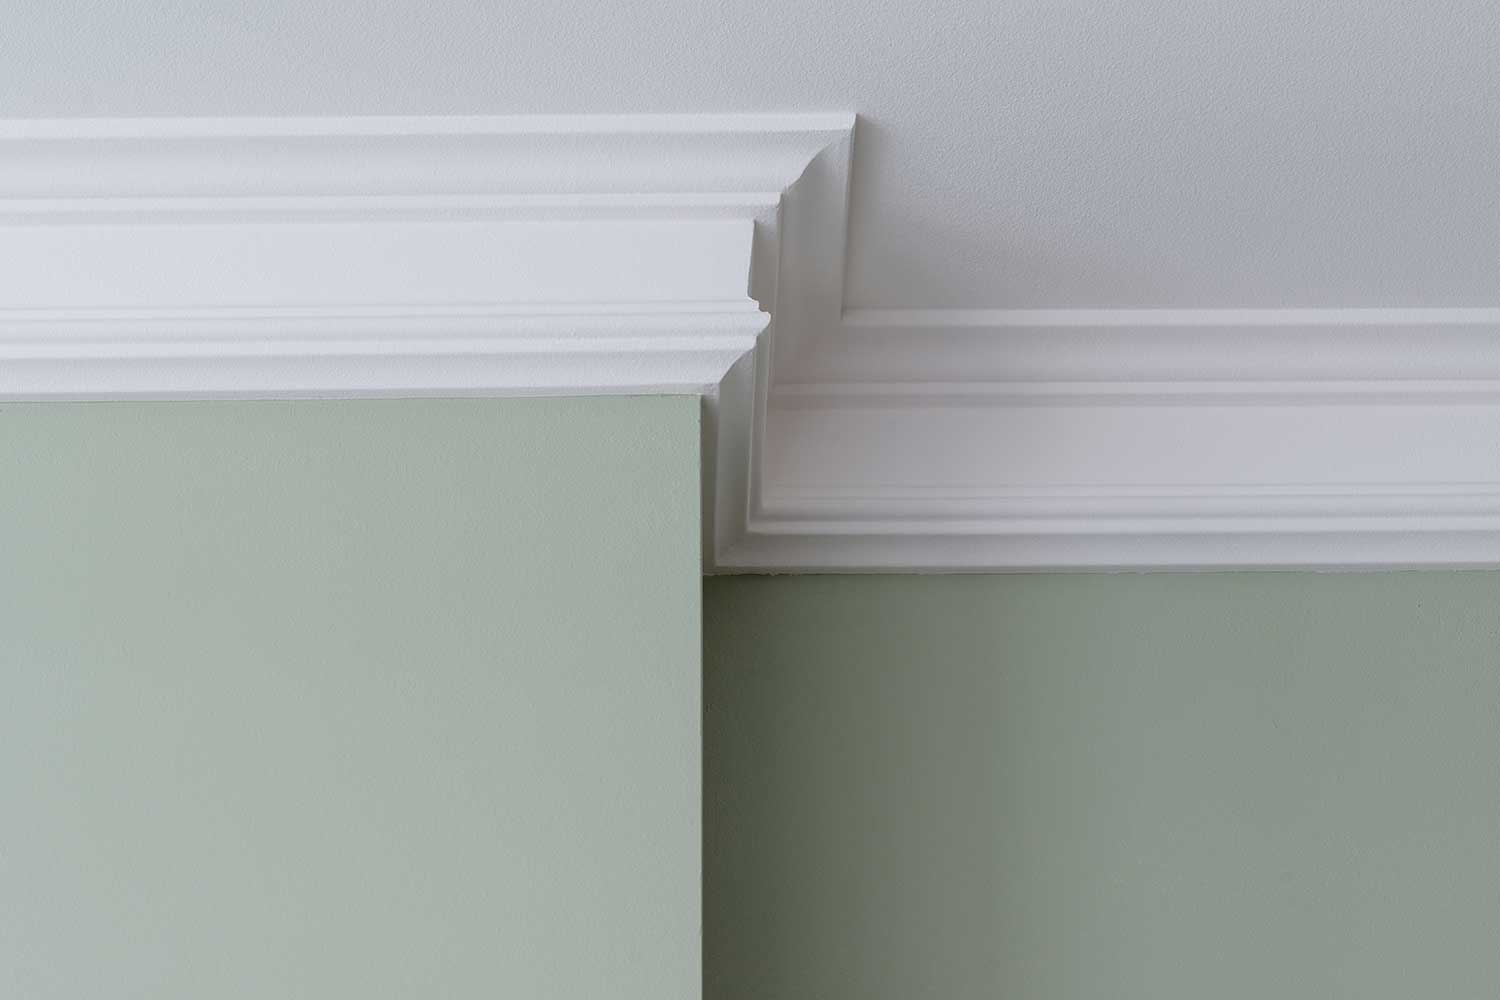 Ceiling moldings in home interior